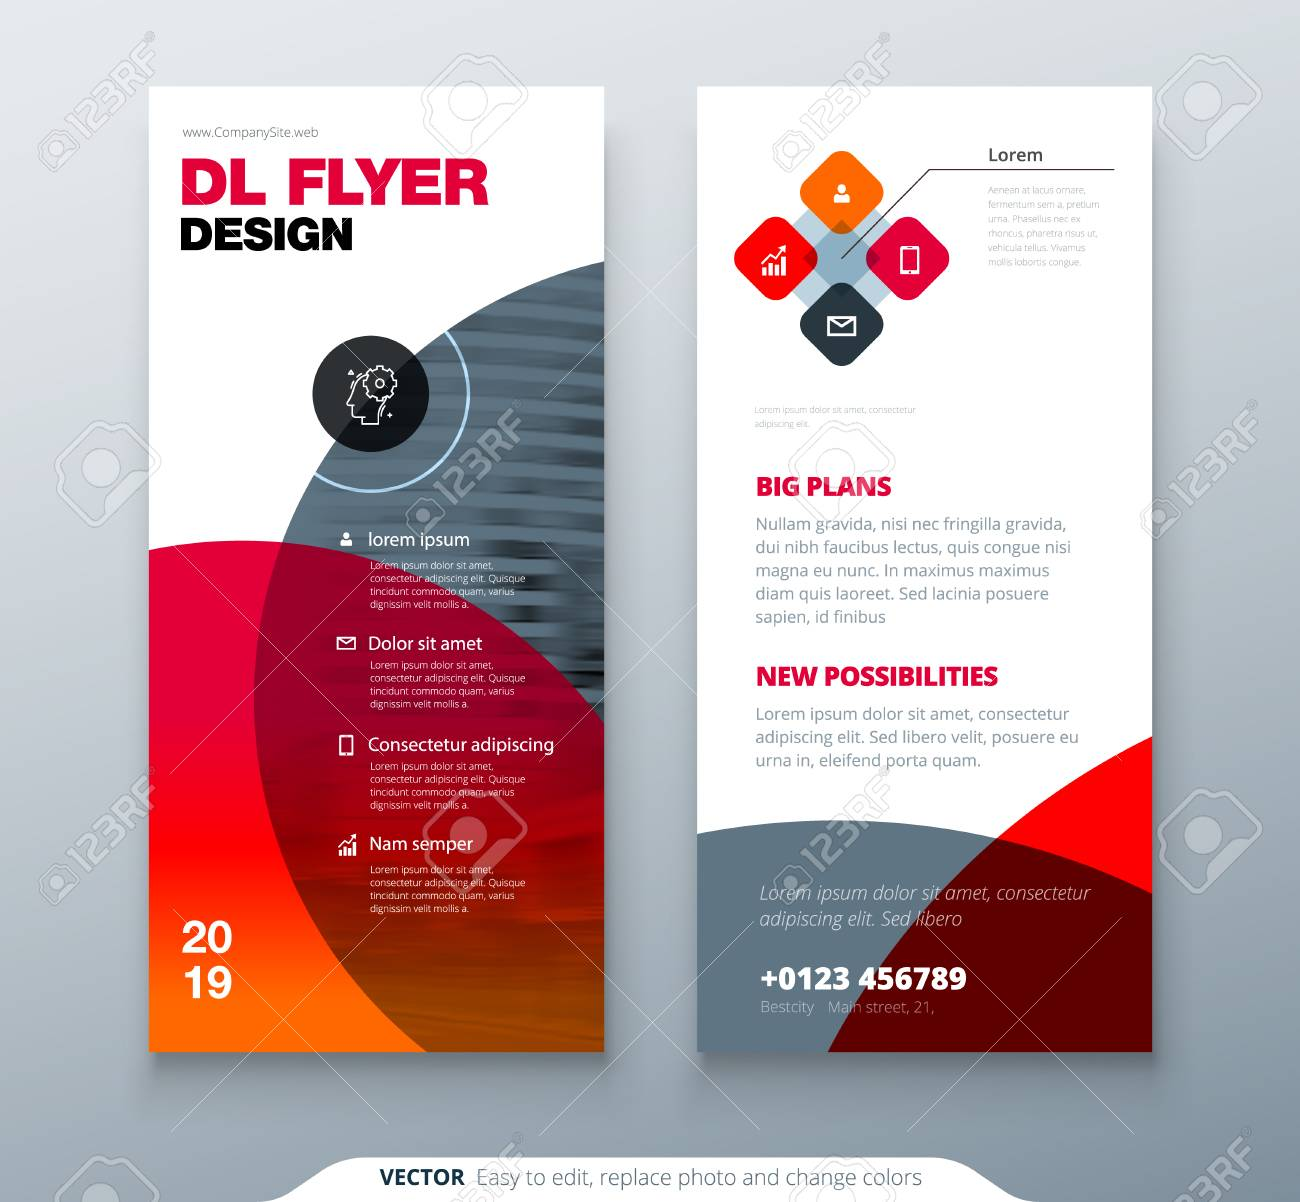 DL Flyer Design. Red Business Template For Dl Flyer. Layout With ...